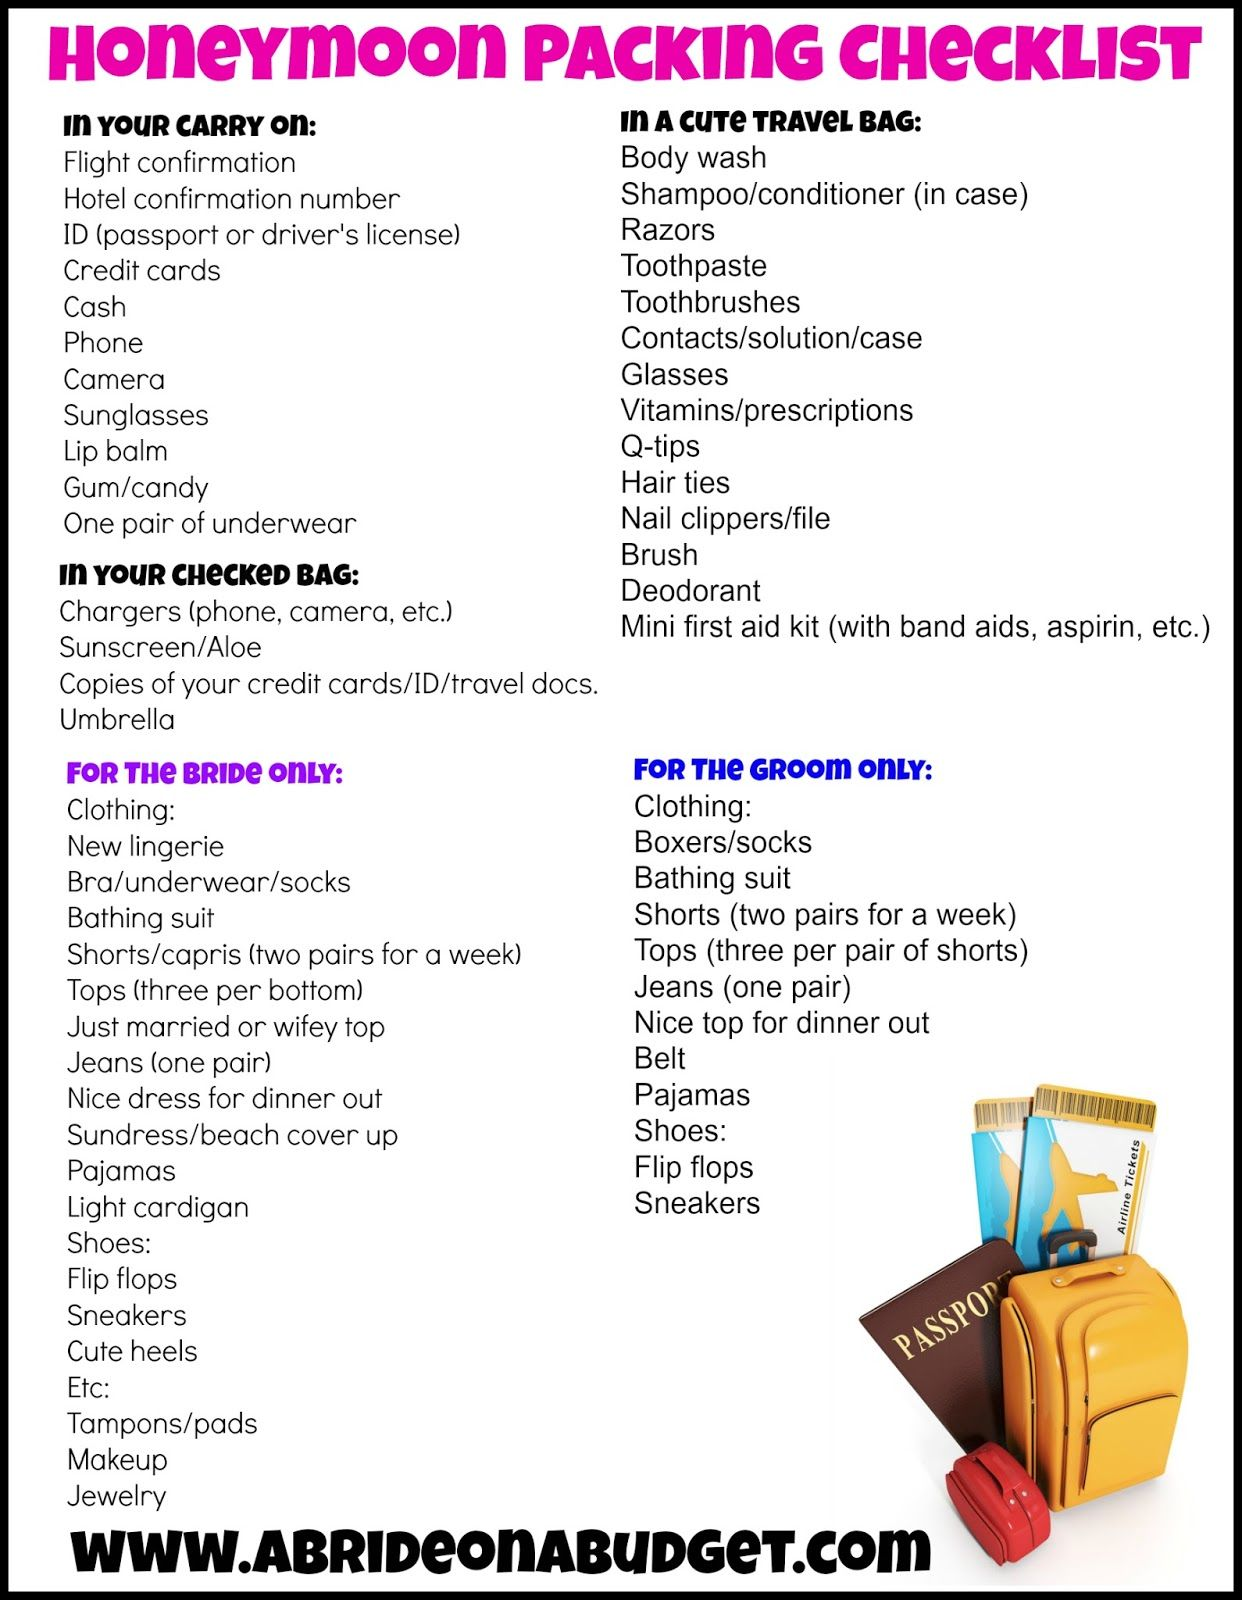 Honeymoon Packing Checklist With A Free Printable Honeymoon Packing Checklist Honeymoon Packing Honeymoon Packing List